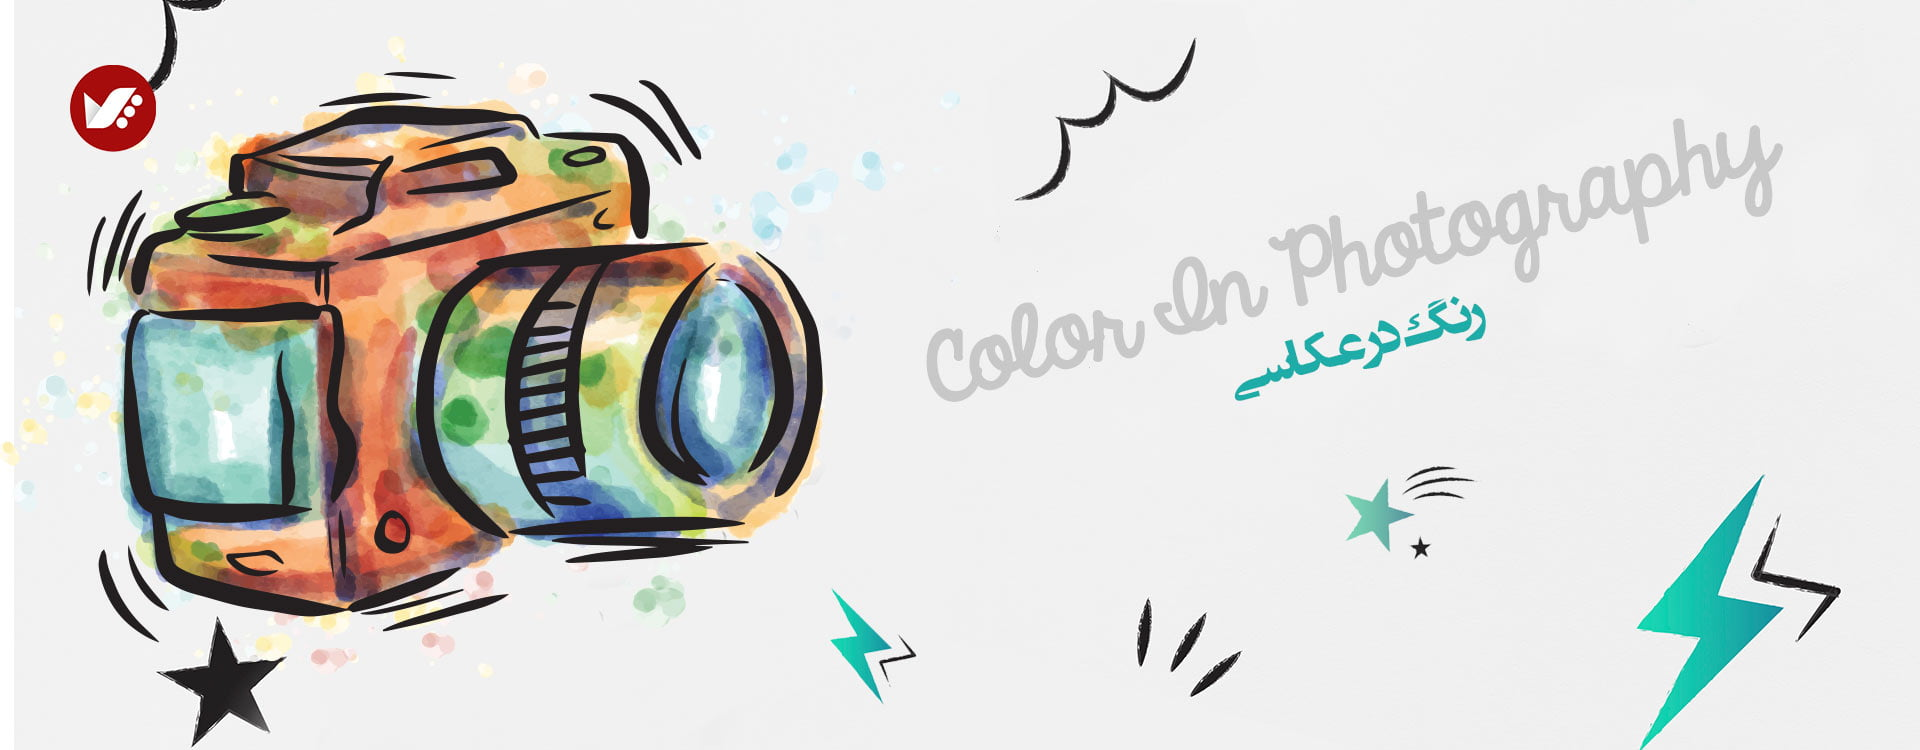 colors in photography article - رنگ ها در عکاسی